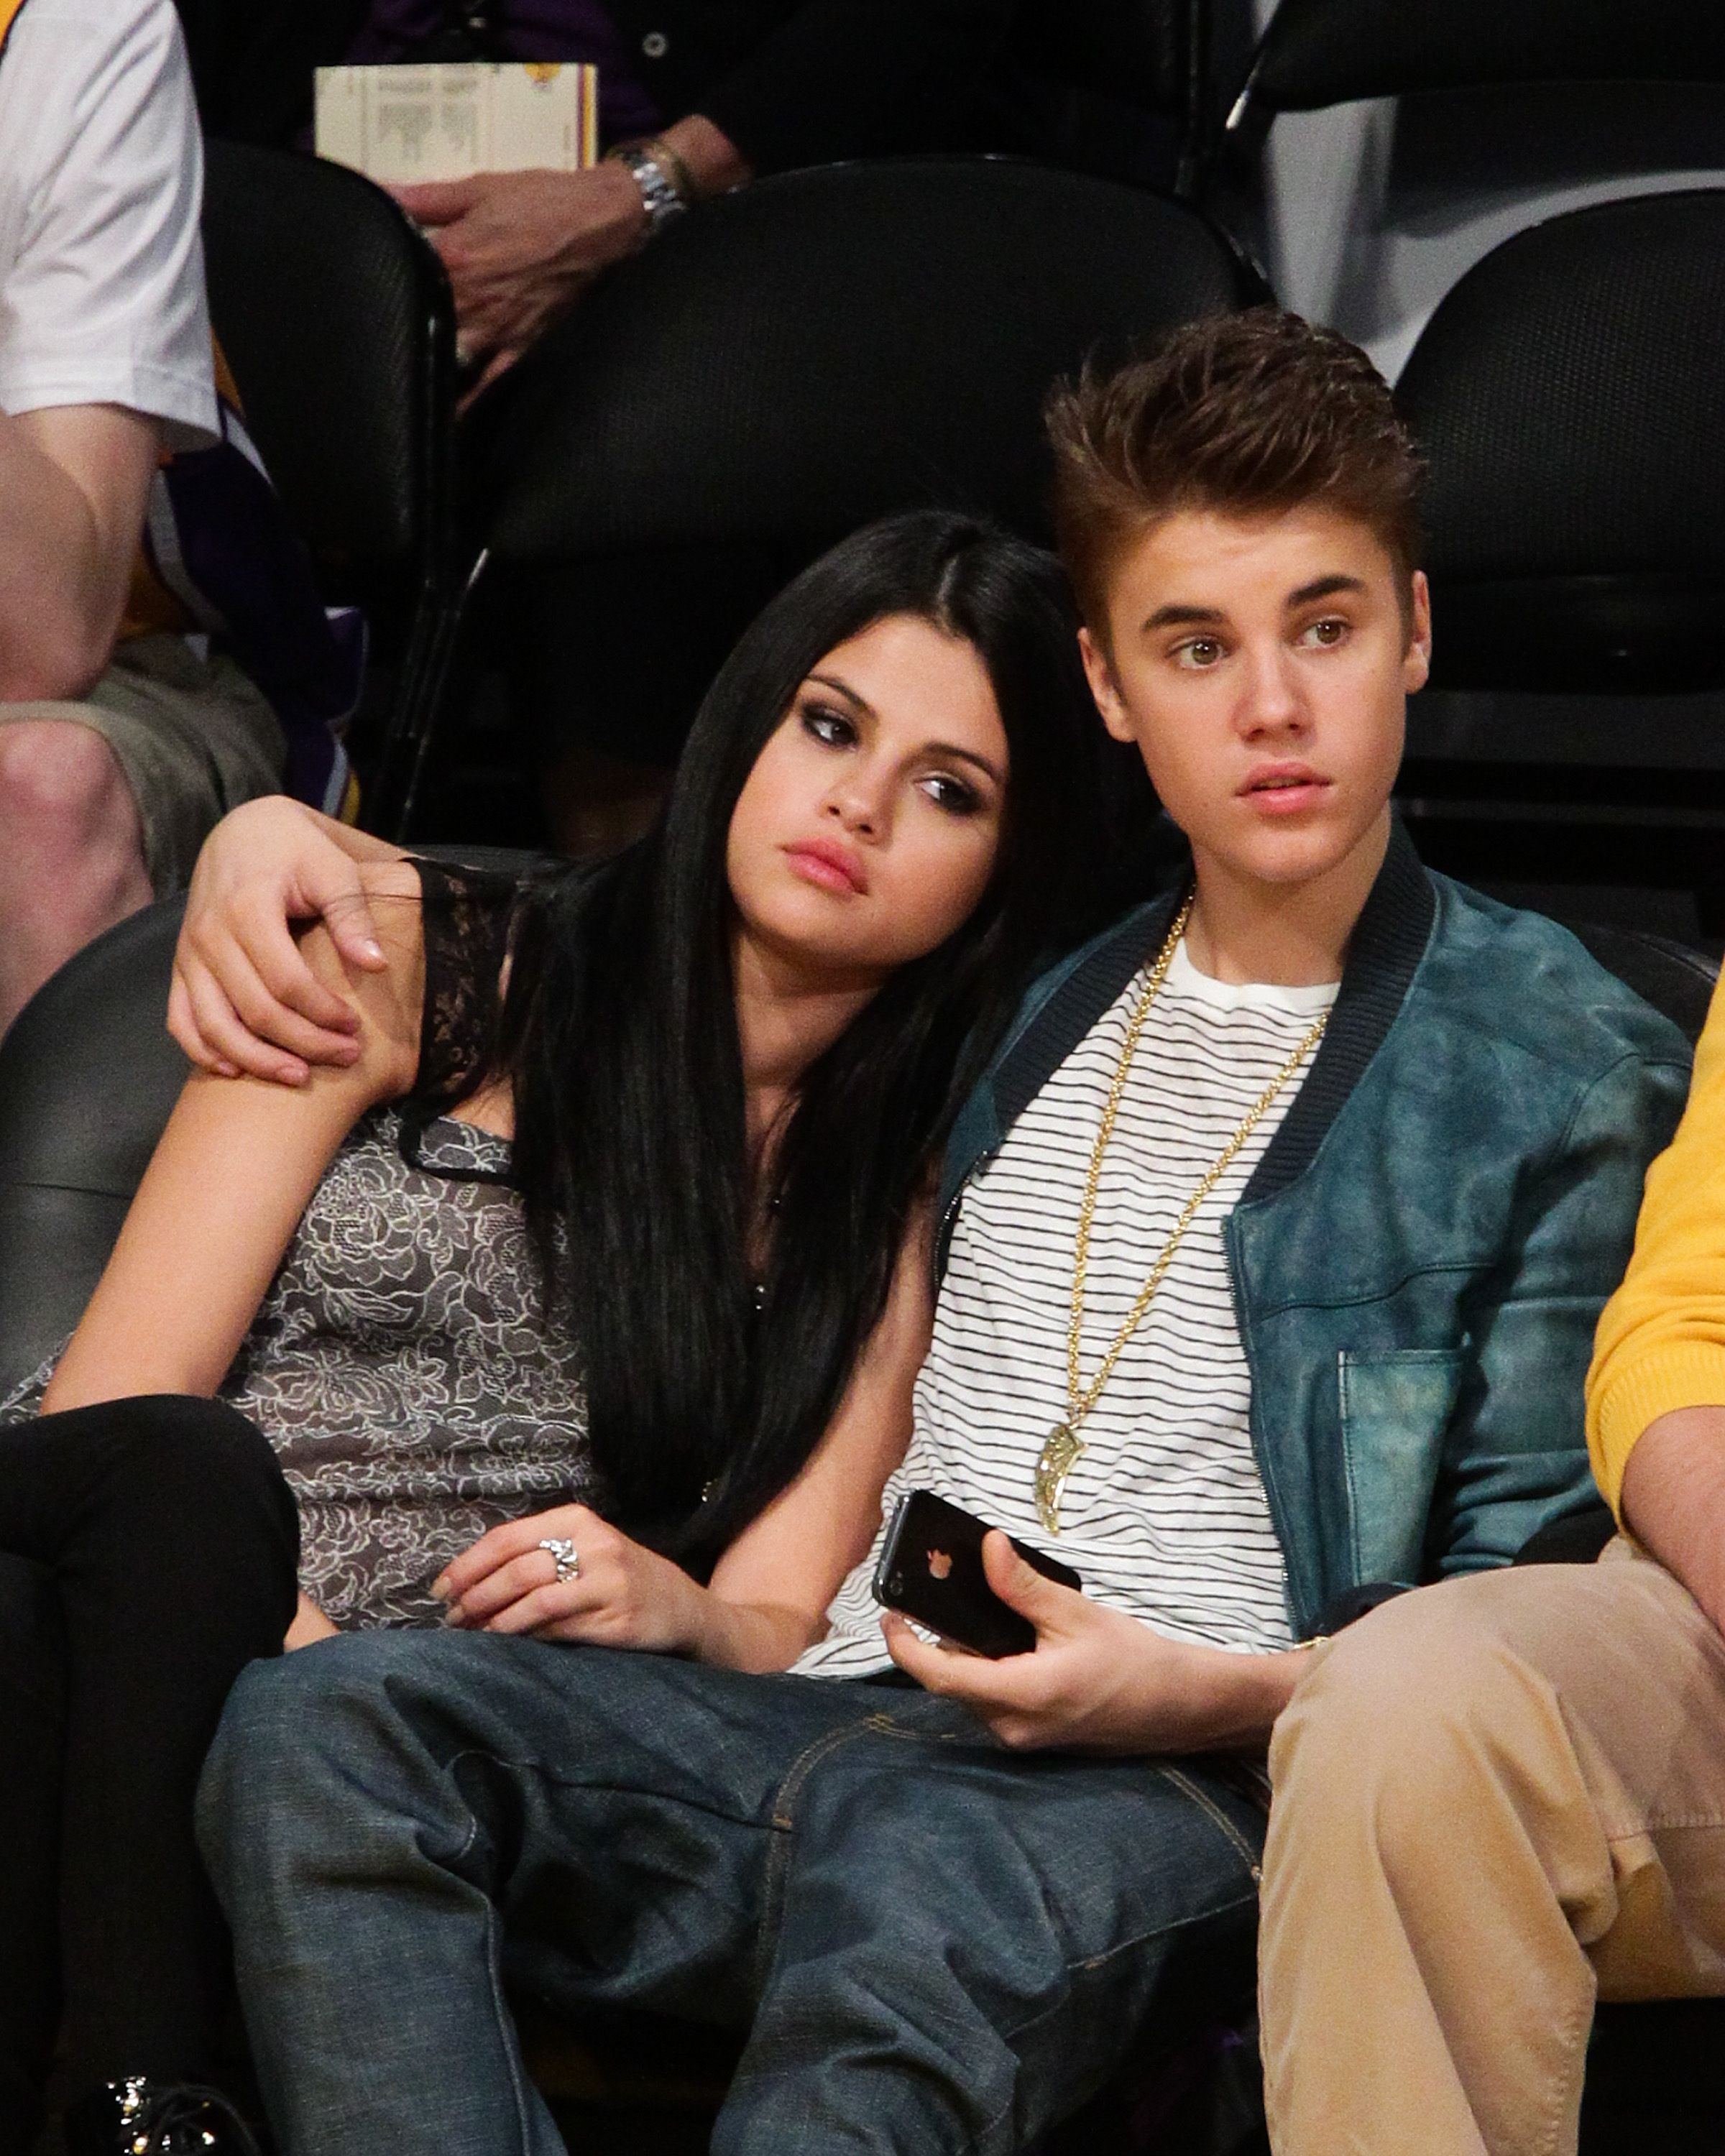 Who is justin bieber hookup now in 2020